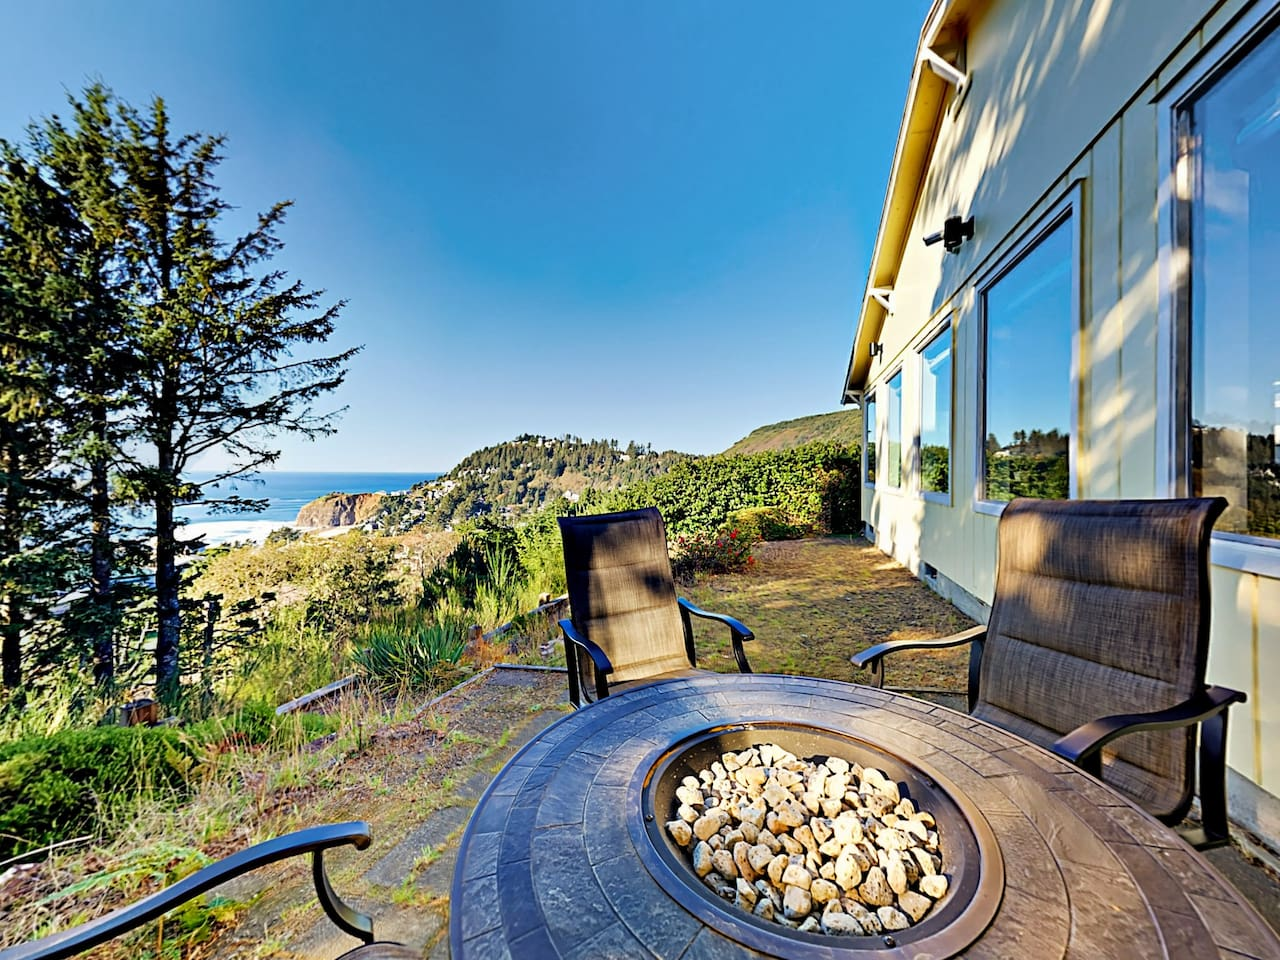 Welcome to Tillamook! Congregate around the backyard fire pit and enjoy views of the Pacific Ocean.